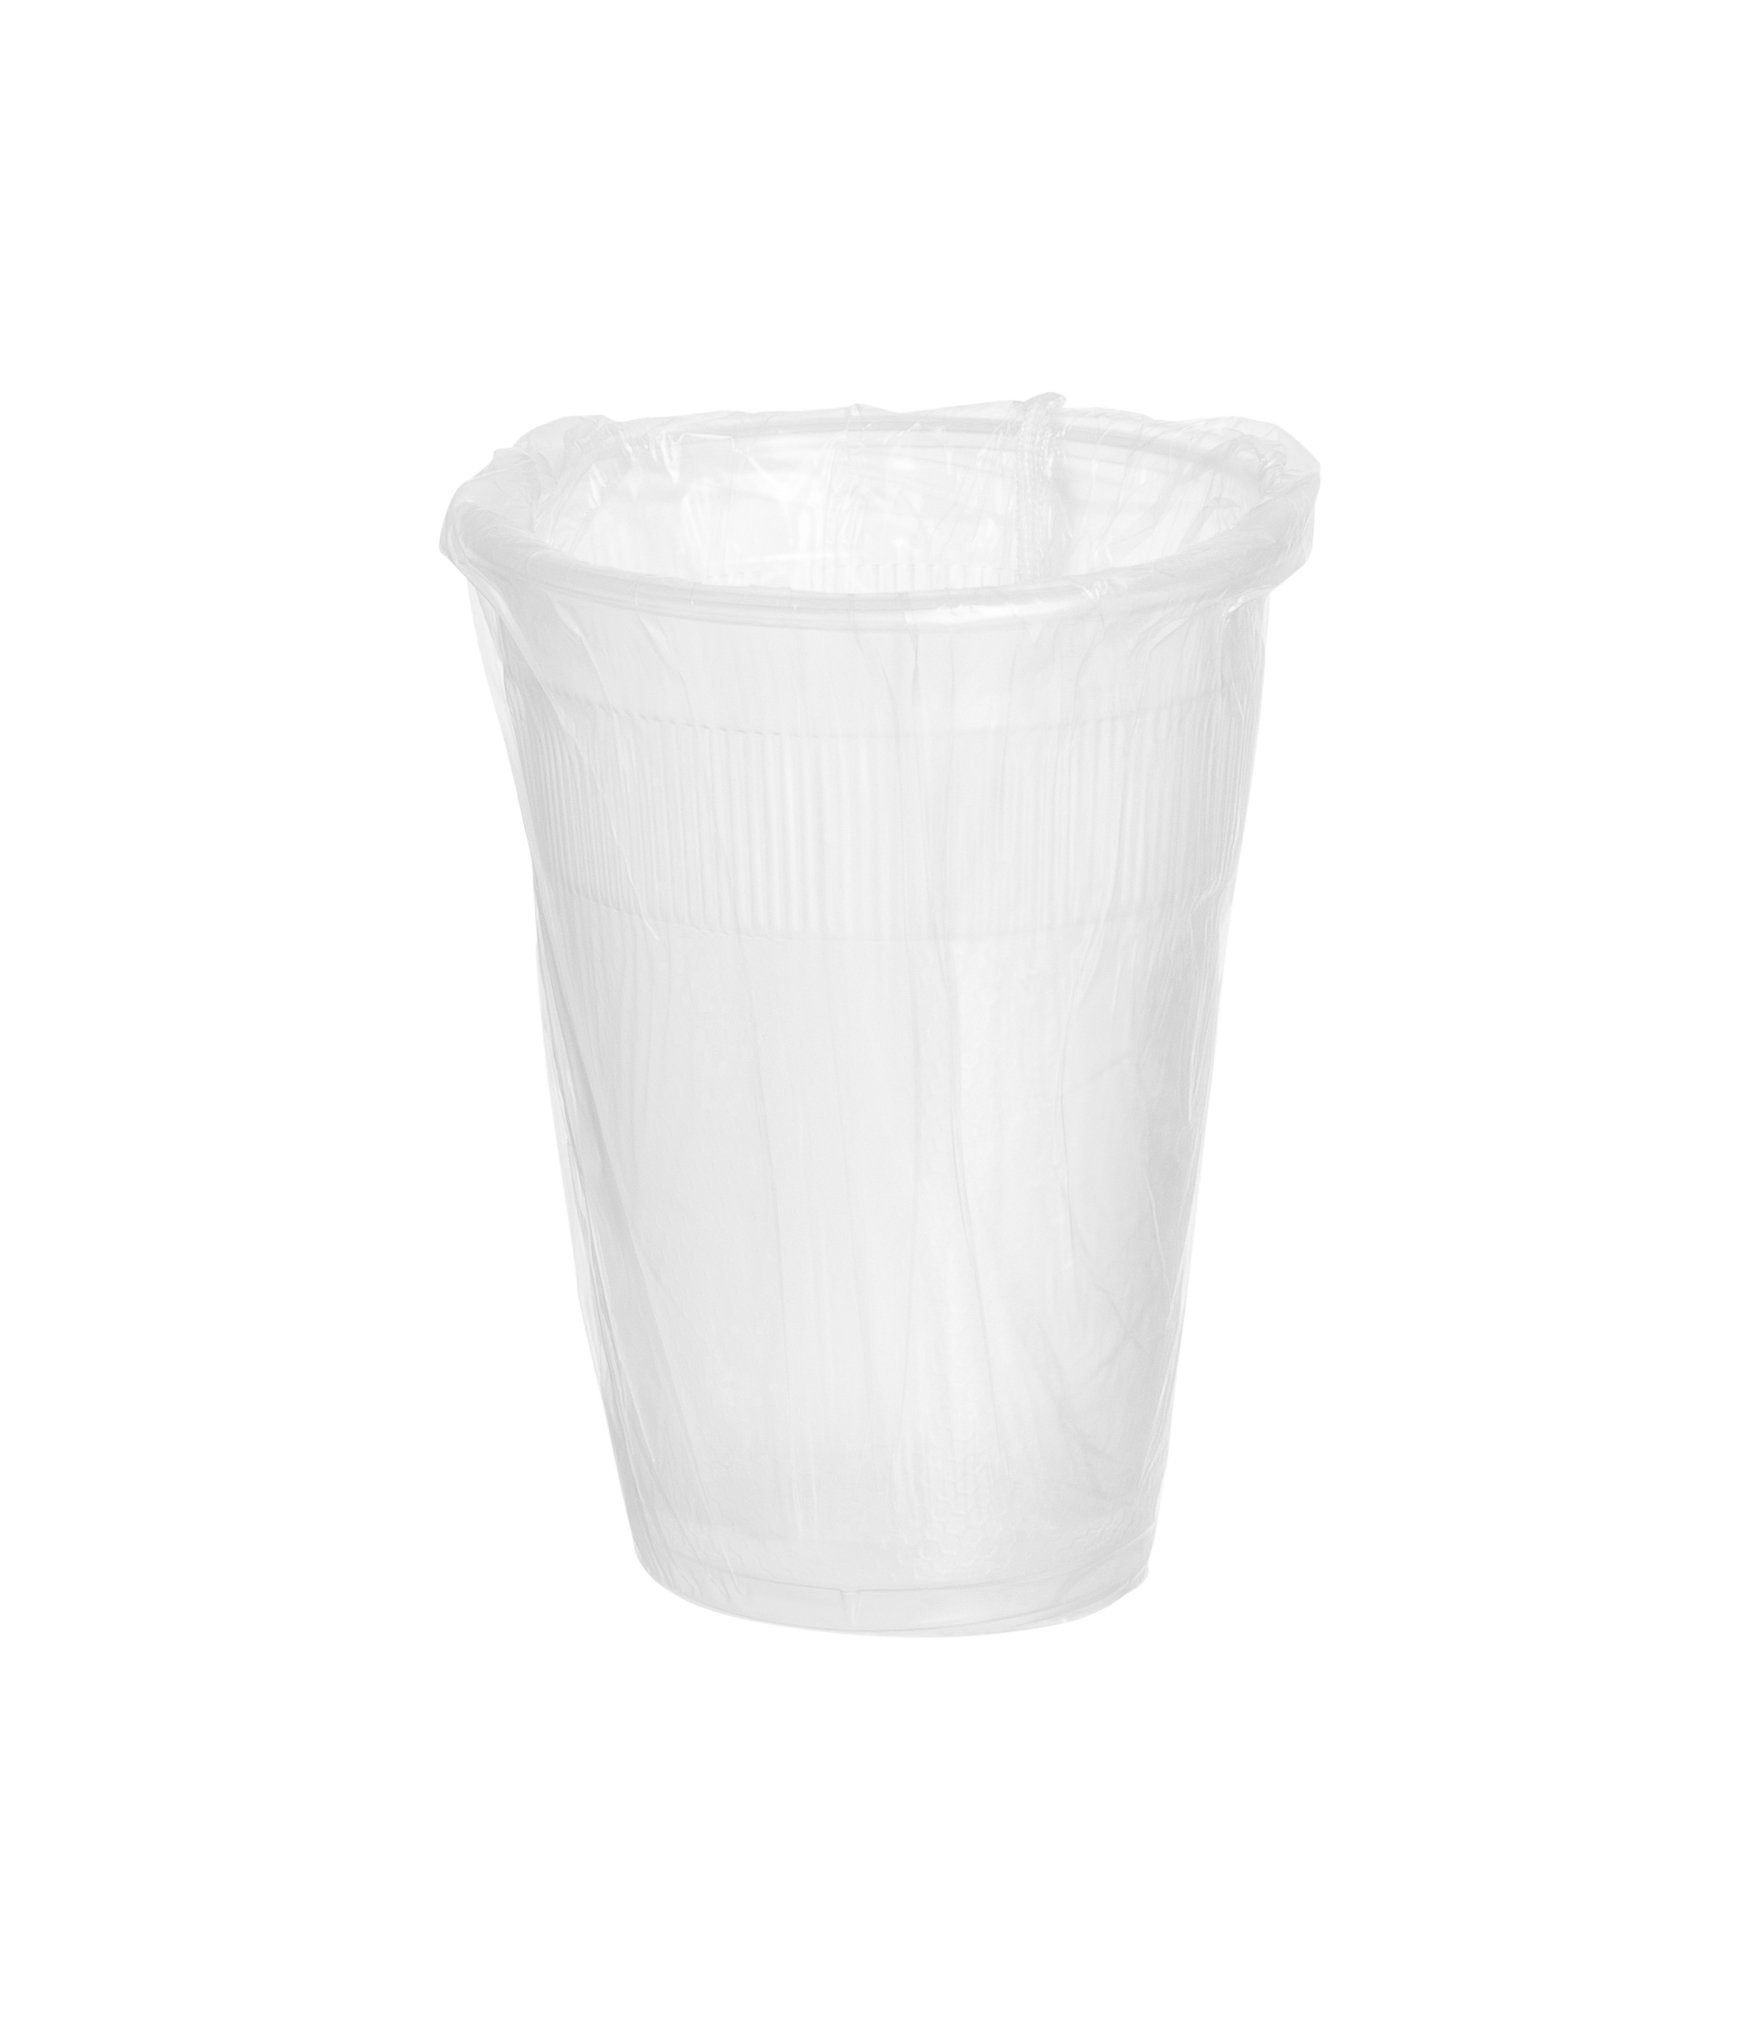 Crystalware IW9PPC1000 PP Individually Wrapped Disposable Plastic Cups, 9 oz. (Pack of 1000)